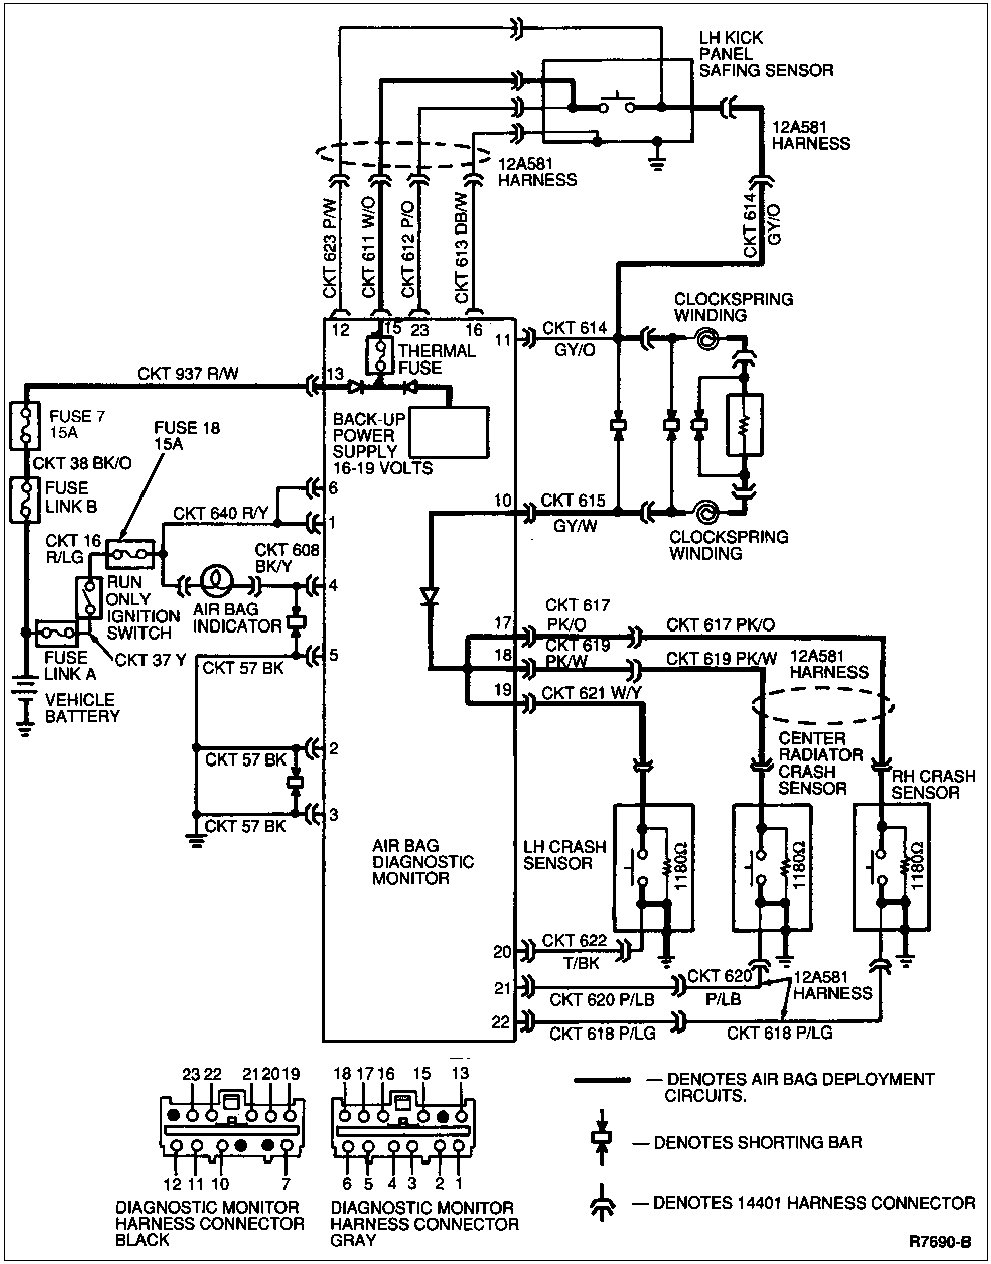 medium resolution of gm srs diagram wiring diagrams computer module chevy airbag schematic wiring diagram source gm wiring diagrams